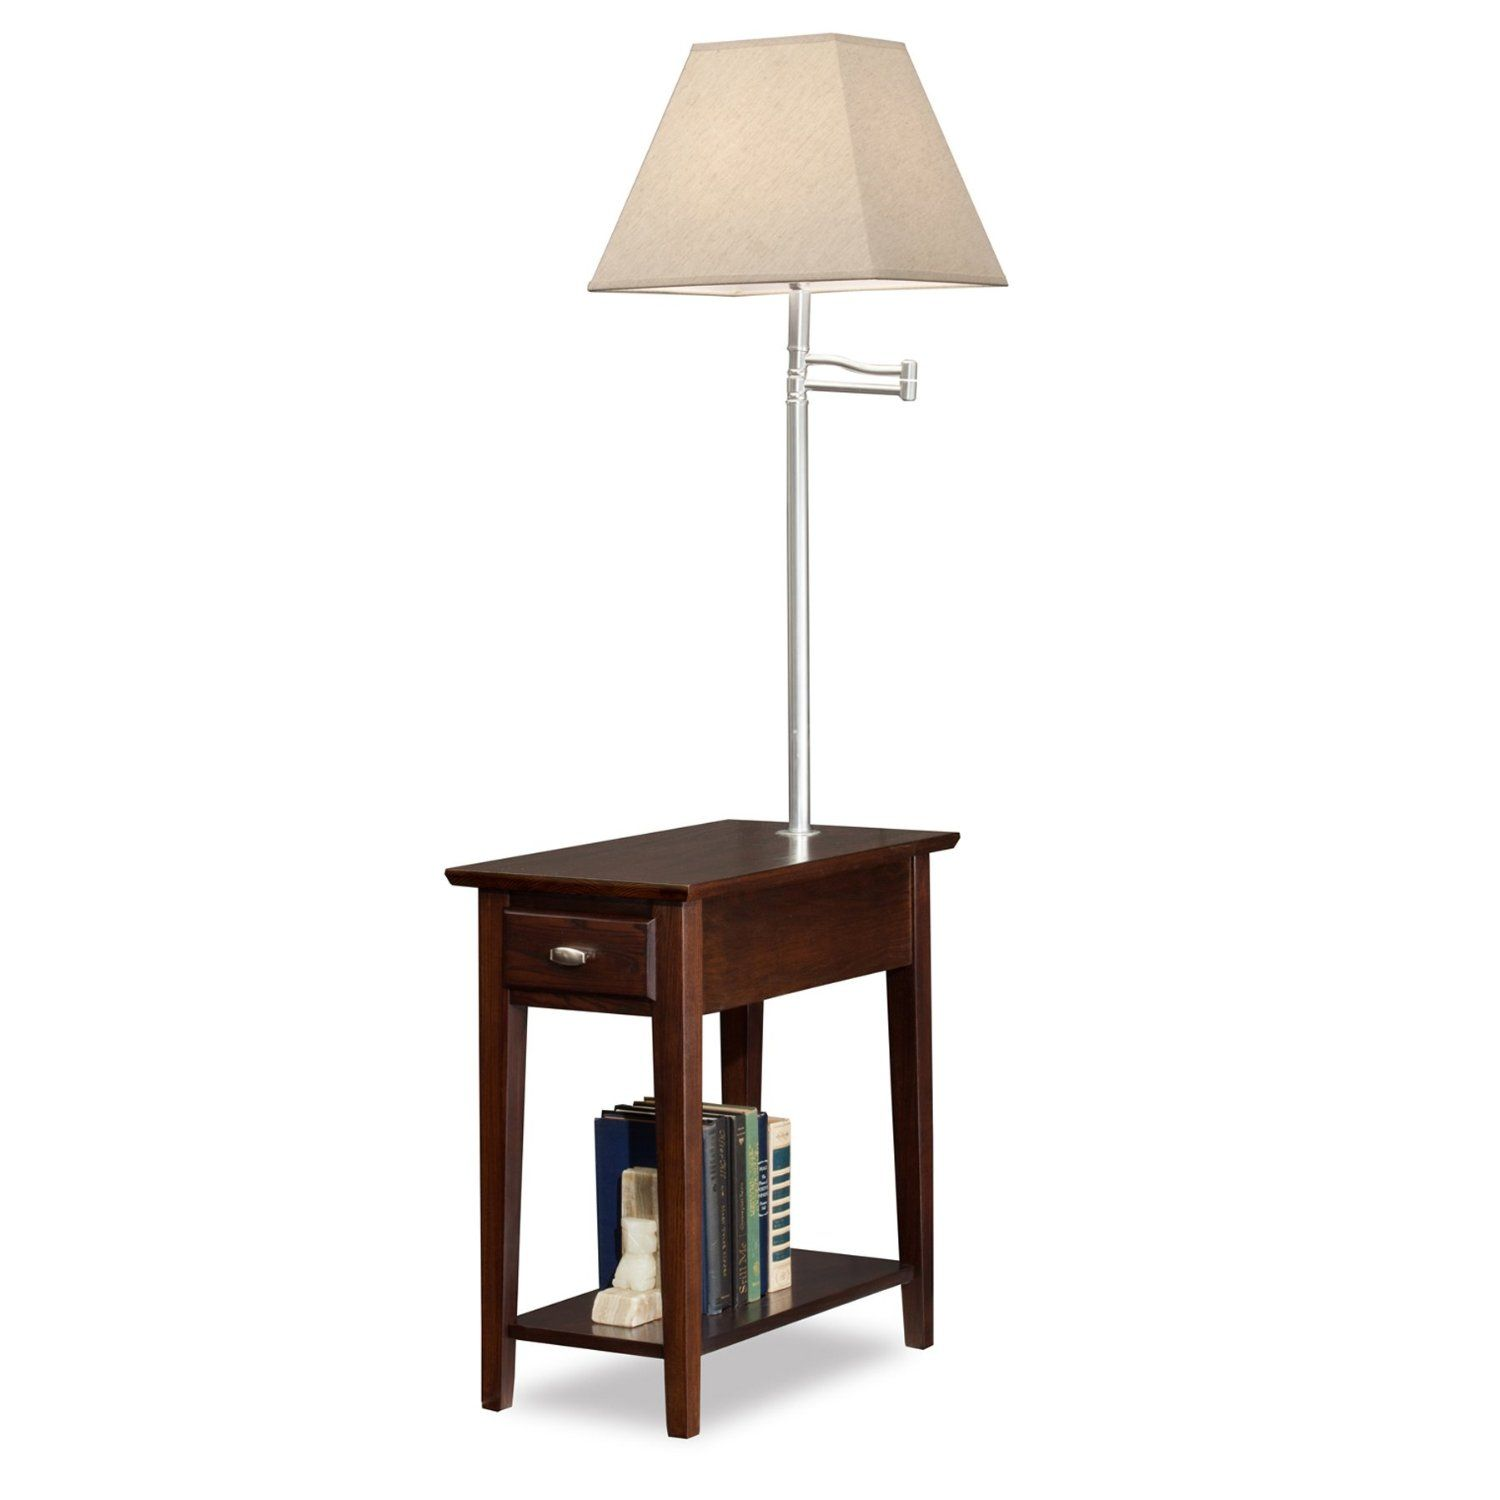 10 Reasons To Buy End Tables With Lamps Attached Idei Dlya Doma